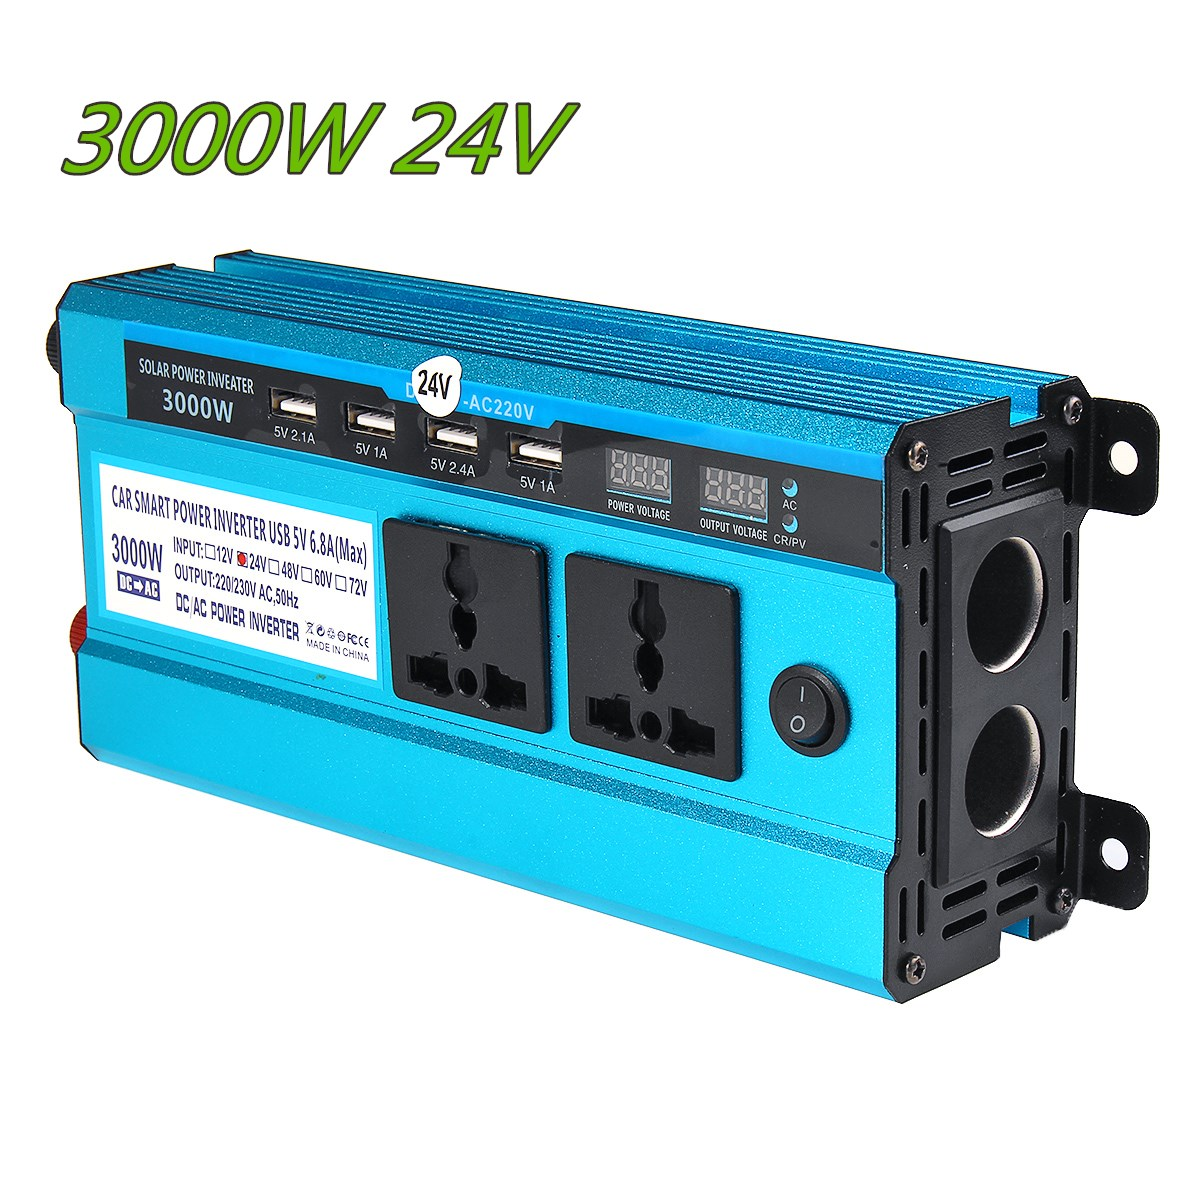 Solar Inverter DC 12V 24V 48V to AC 220V 3000W 4000W 5000W Inverter 17